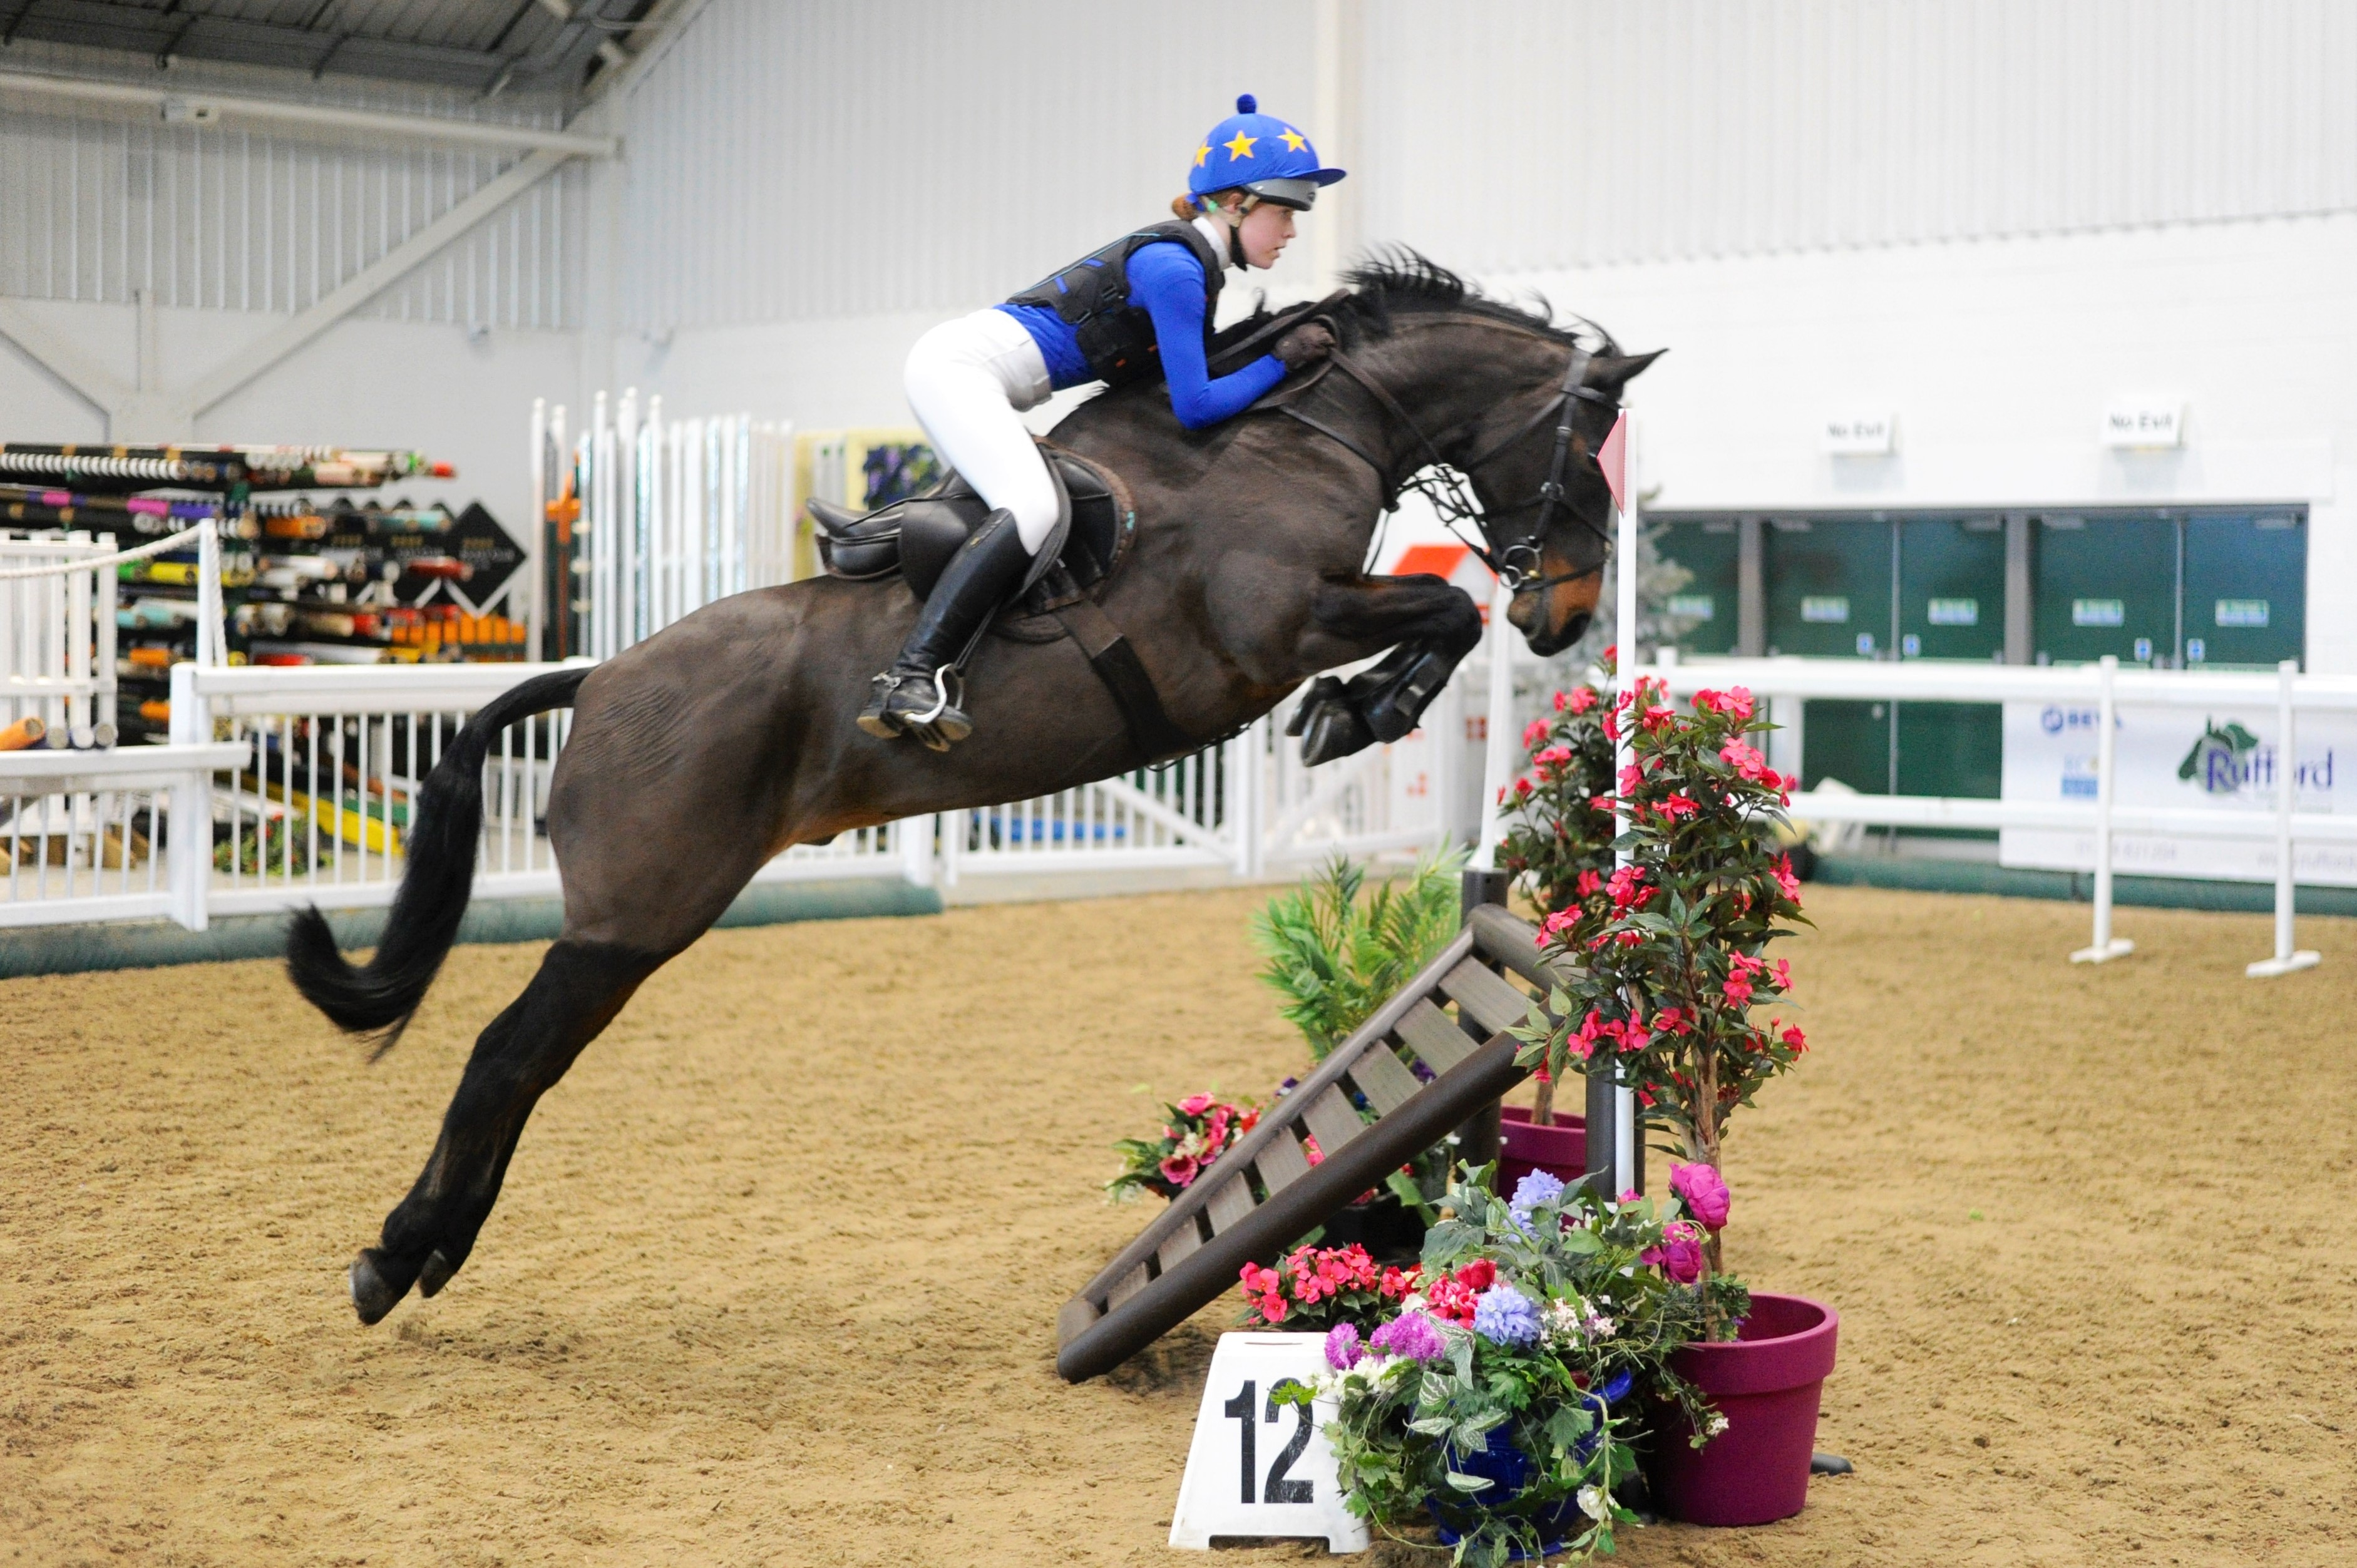 Arena Eventing 11th February 2018 Aintree International Equestrian Centre